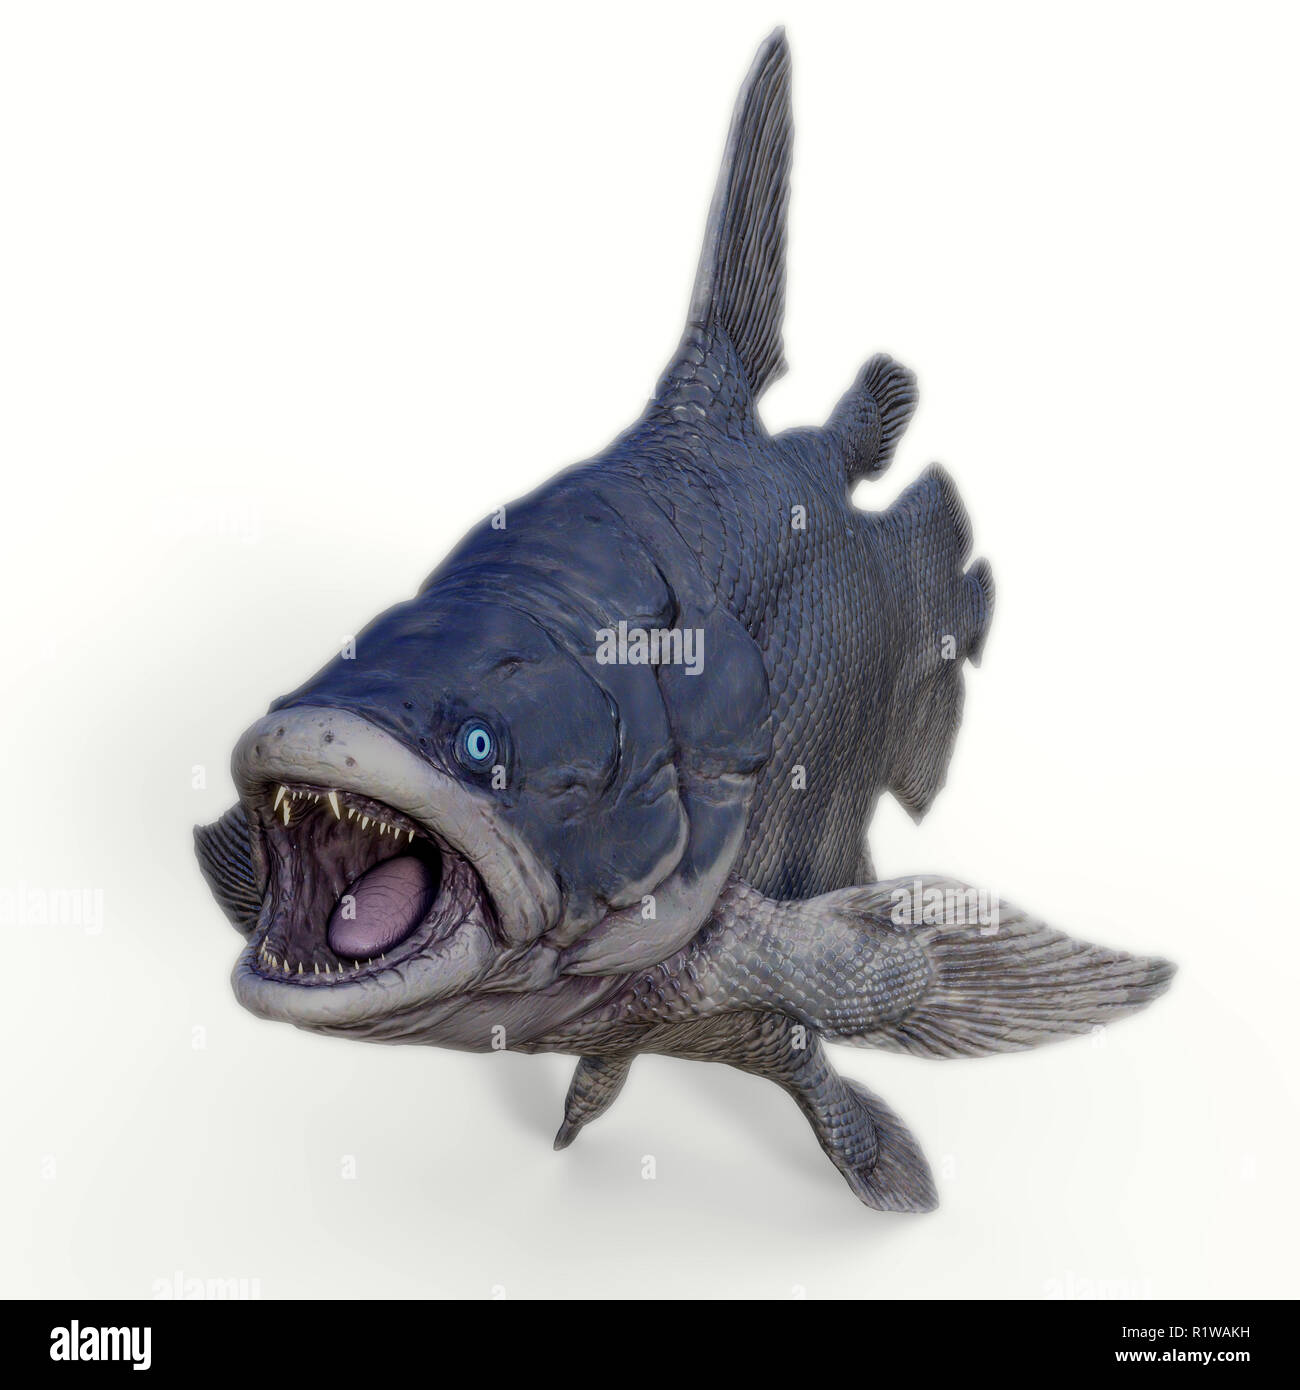 Mawsonia was a extinct coelacanth lobe-finned fish that prowled the deep ocean during the Triassic and Cretaceous Periods of North Africa and Brazil,  - Stock Image